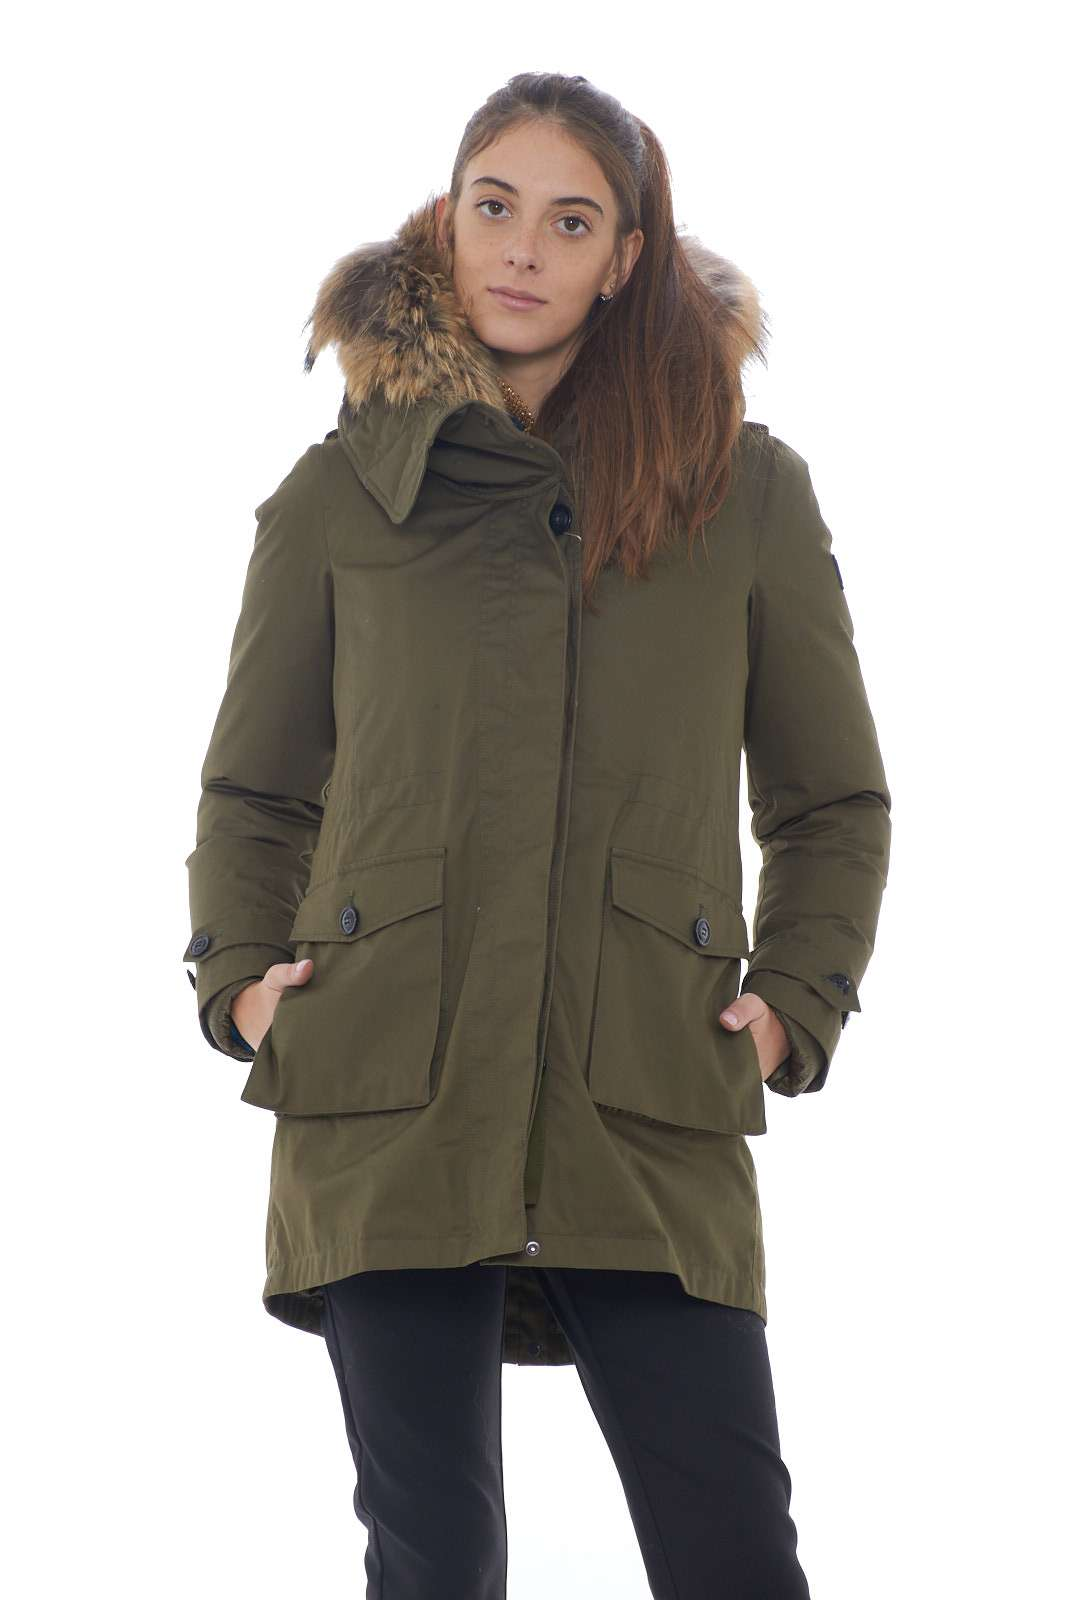 https://www.parmax.com/media/catalog/product/a/i/AI-outlet_parmax-parka-donna-Woolrich-WWCPS2760-A.jpg